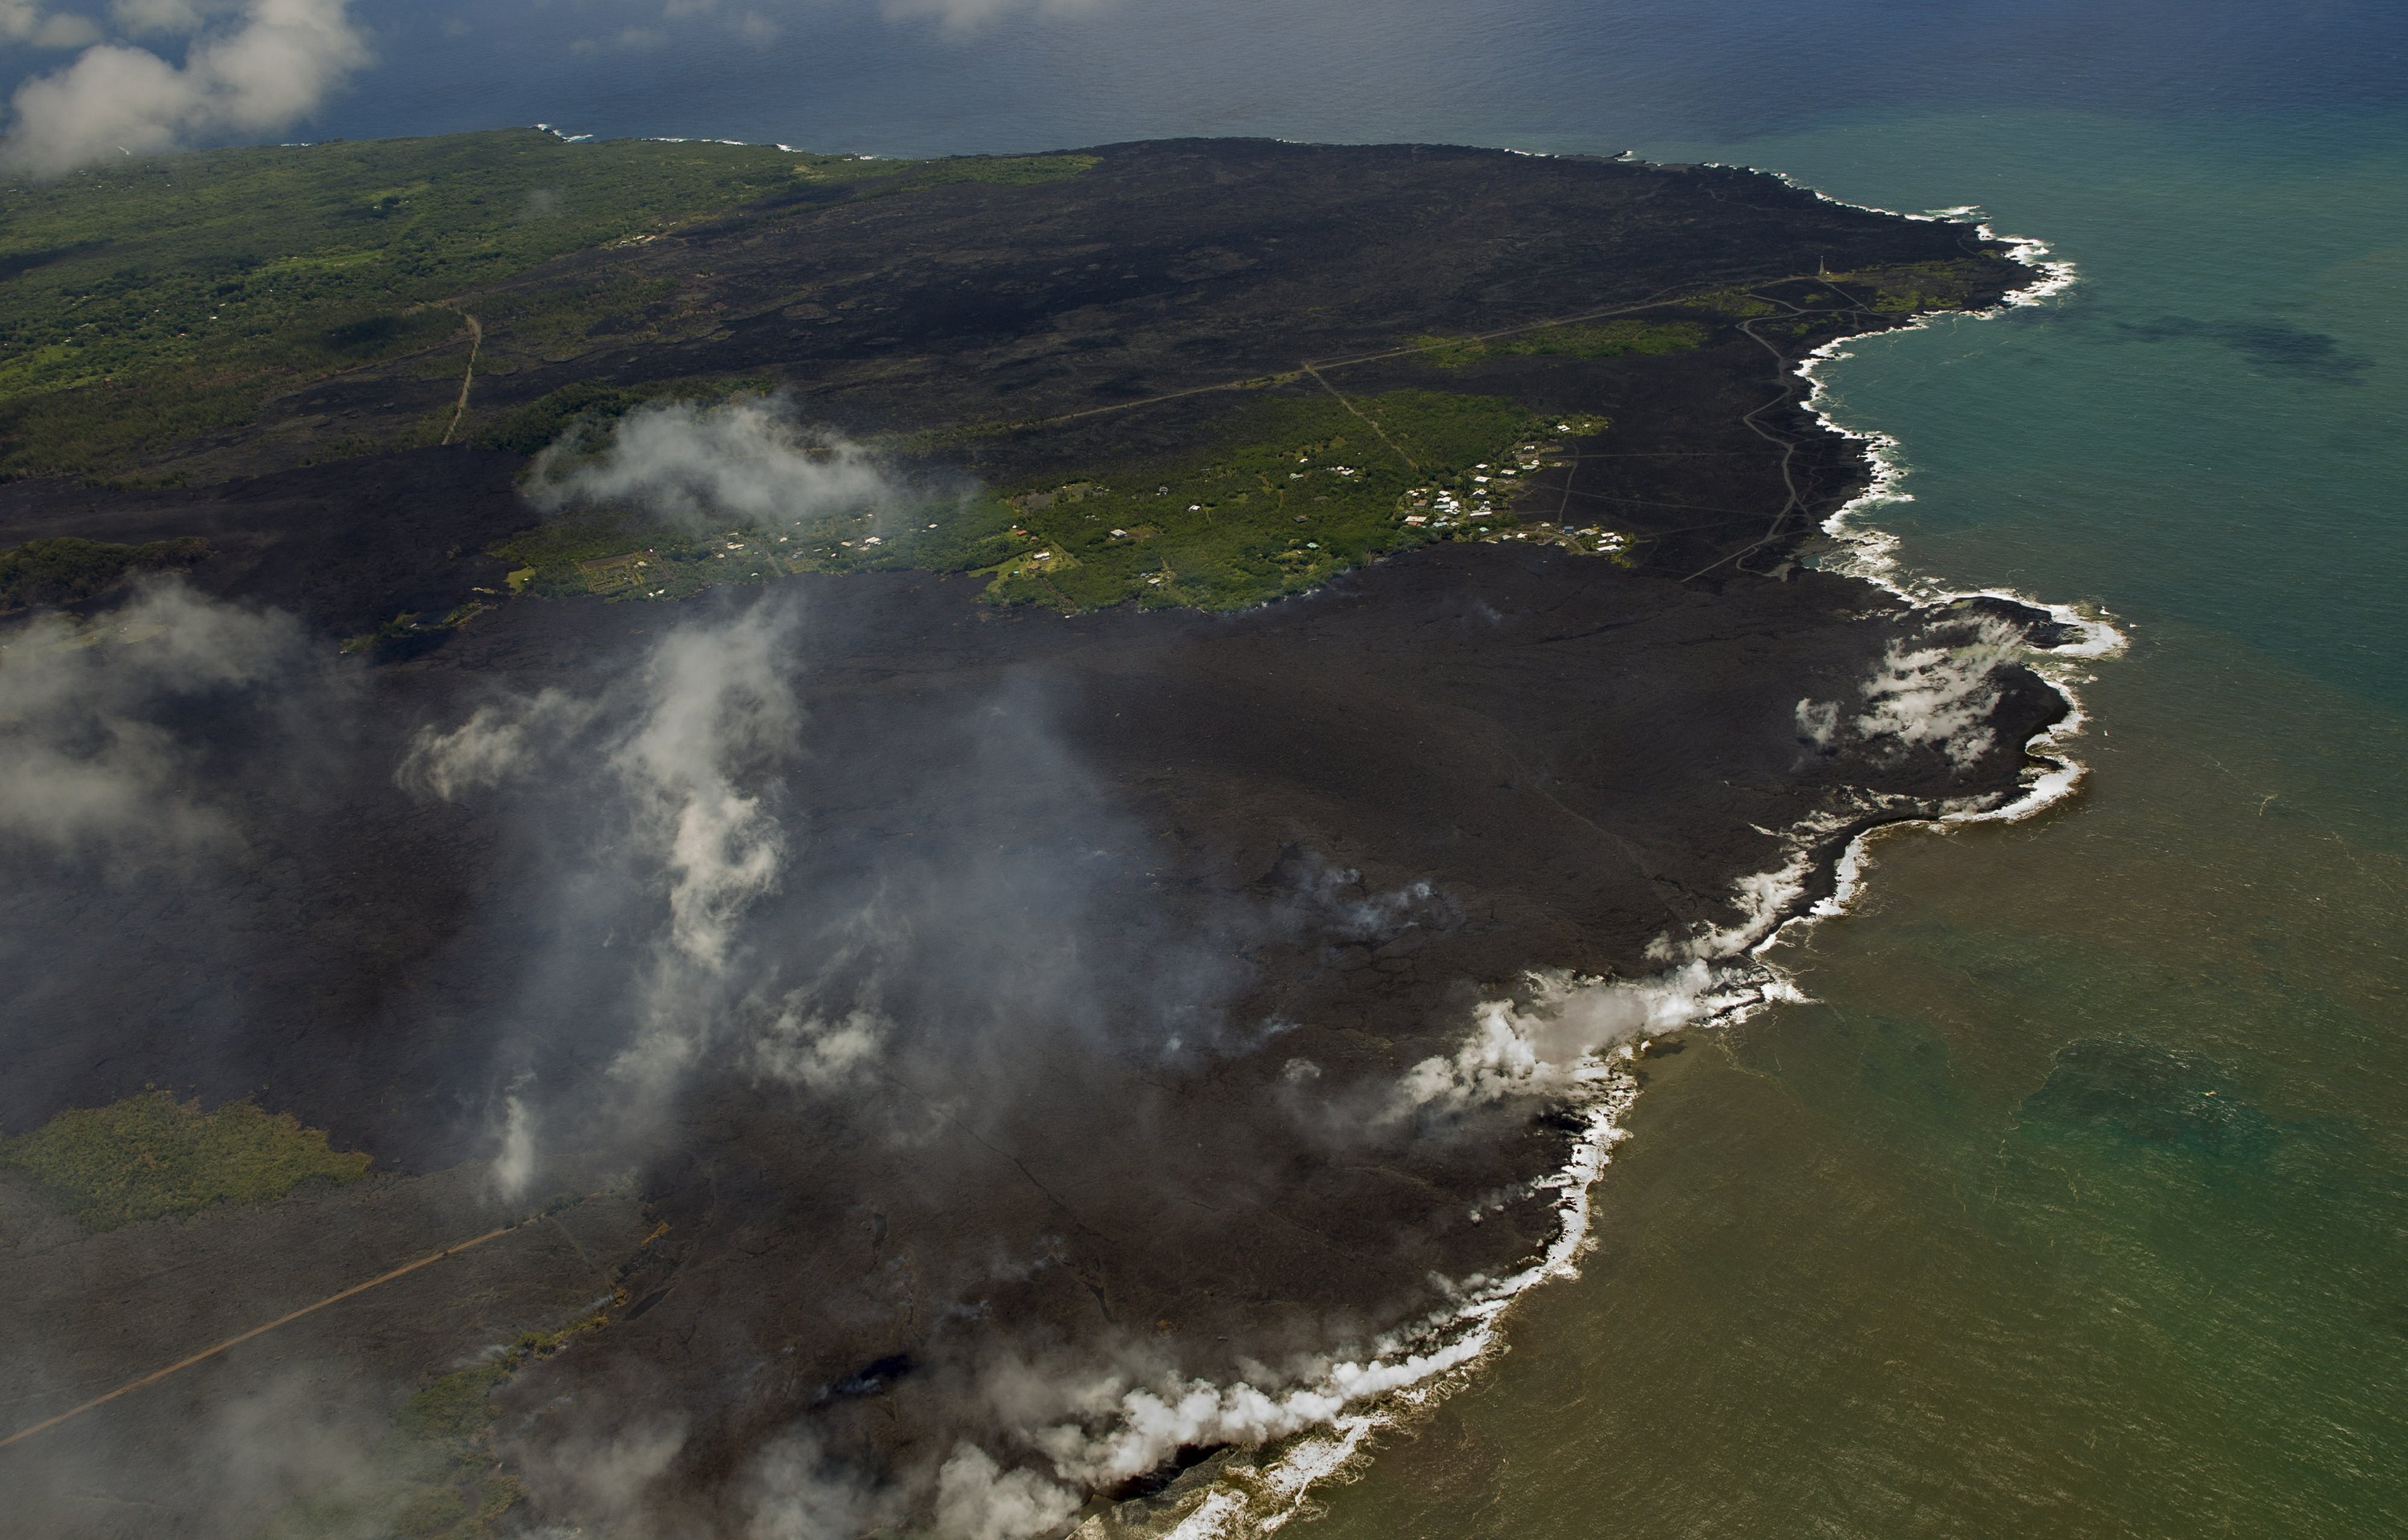 Volcano creates new land after lava fills Hawaii ocean bay